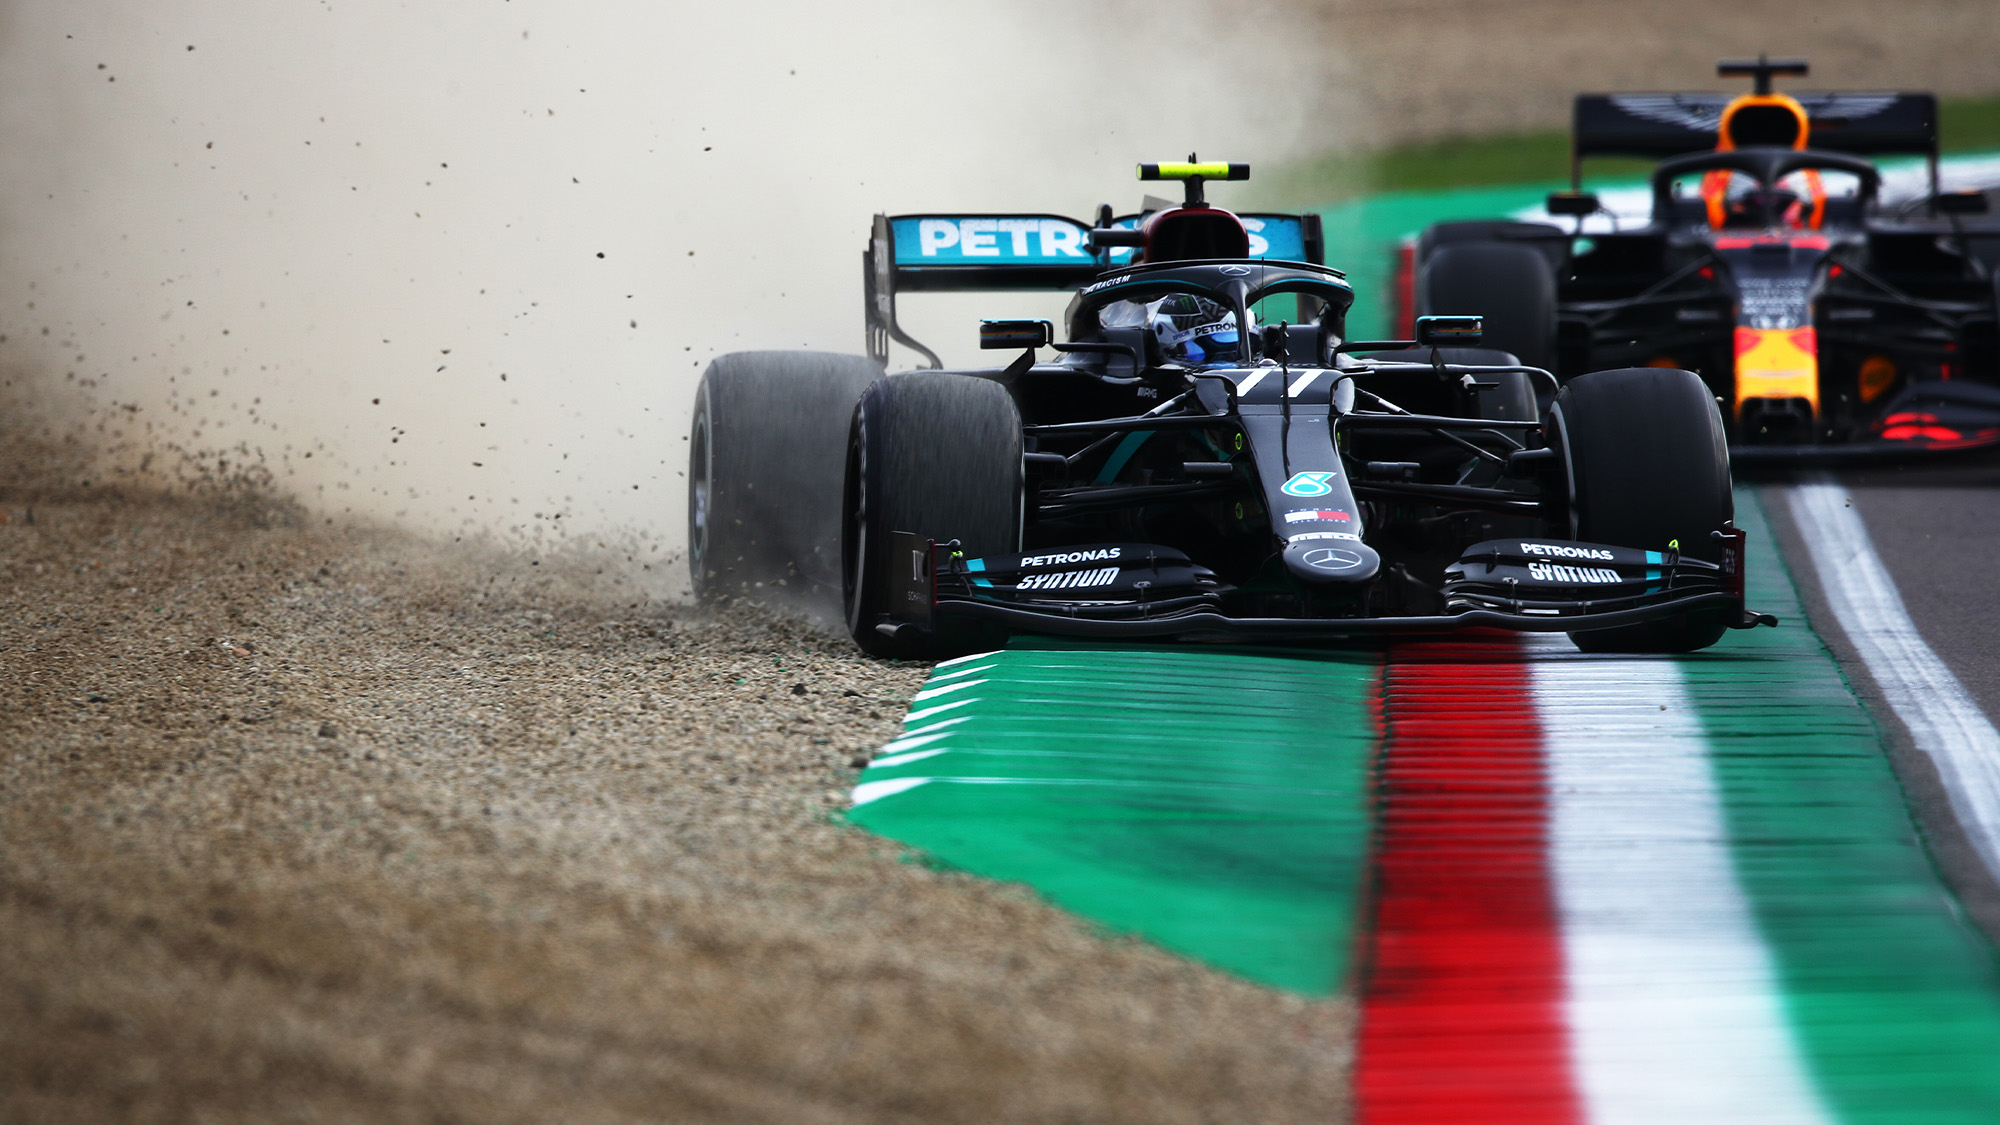 Valtteri Bottas' Mercedes runs wide onto the gravel at Imola as Max Verstappen's Red Bull looms behind during the 2020 F1 Emilia Romagna Grand Prix